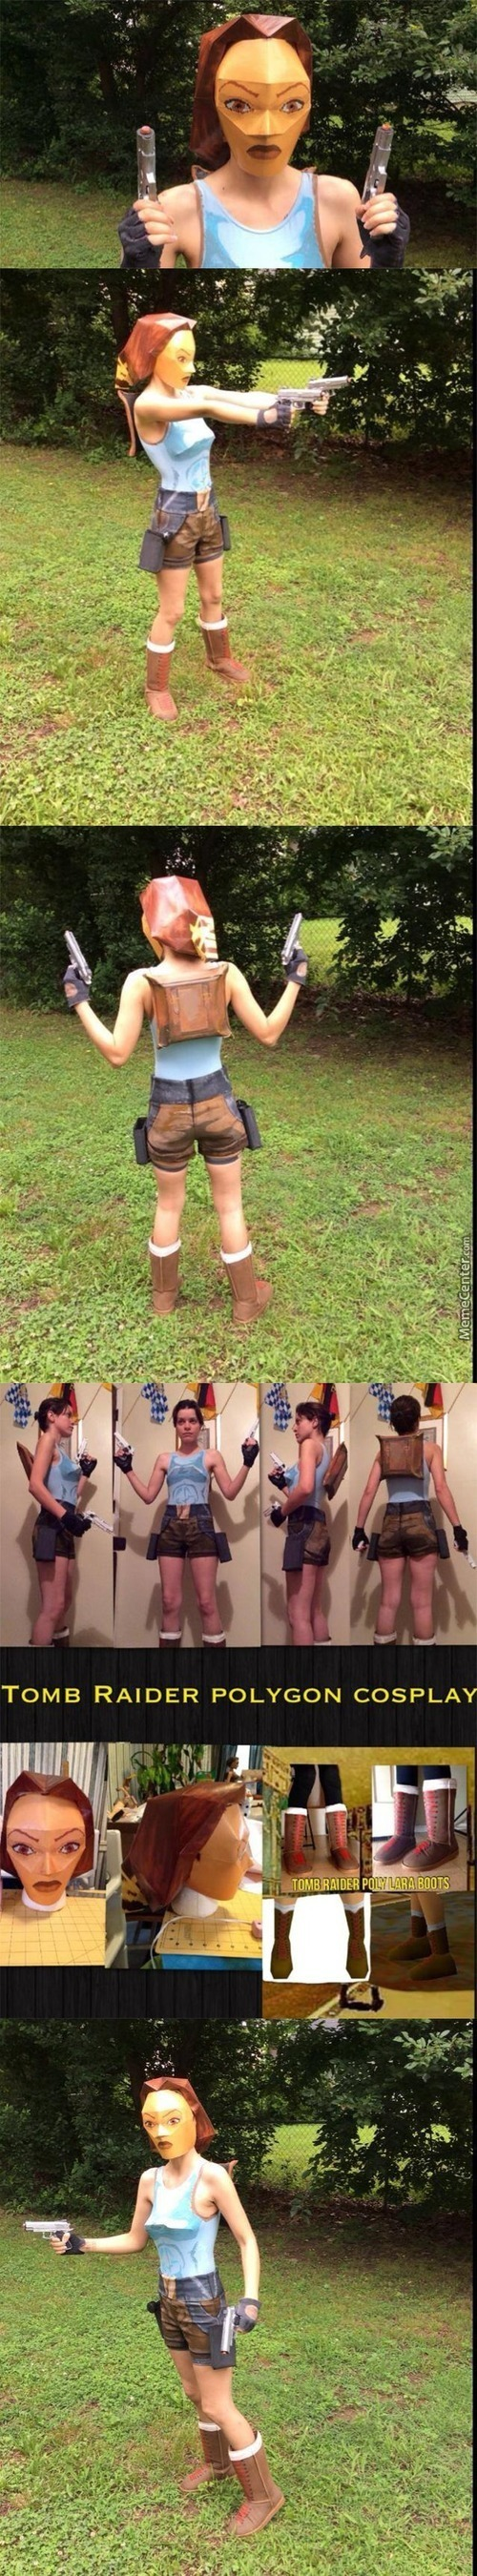 Best Laura Croft Cosplay Of All Time, Look At Dat Triangle Boobs And Dat Square Ass